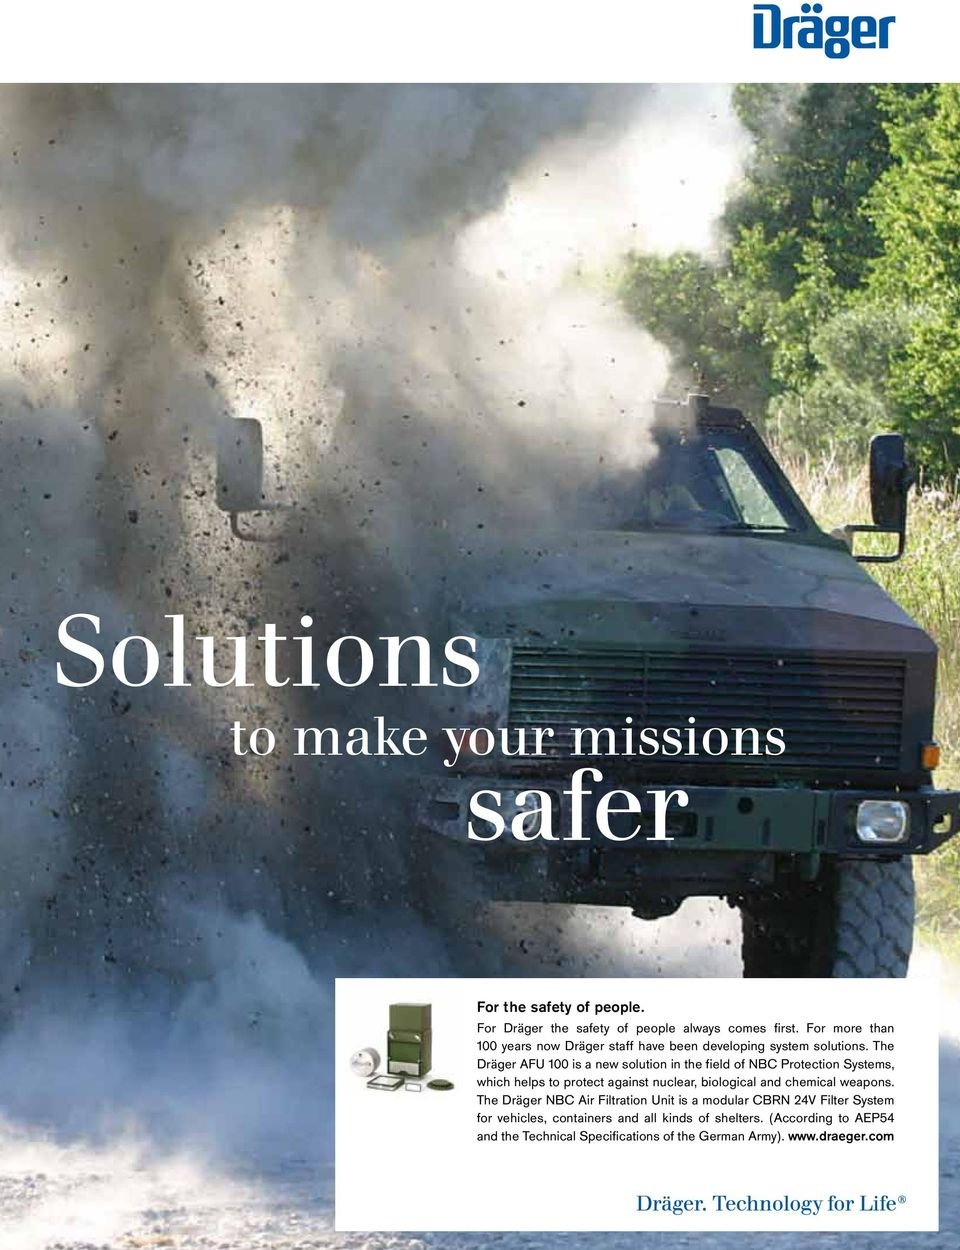 new solution in the field of NBC Protection Systems, For which Dräger helps to the protect safety against of people nuclear, always biological comes and first. chemical For more weapons.